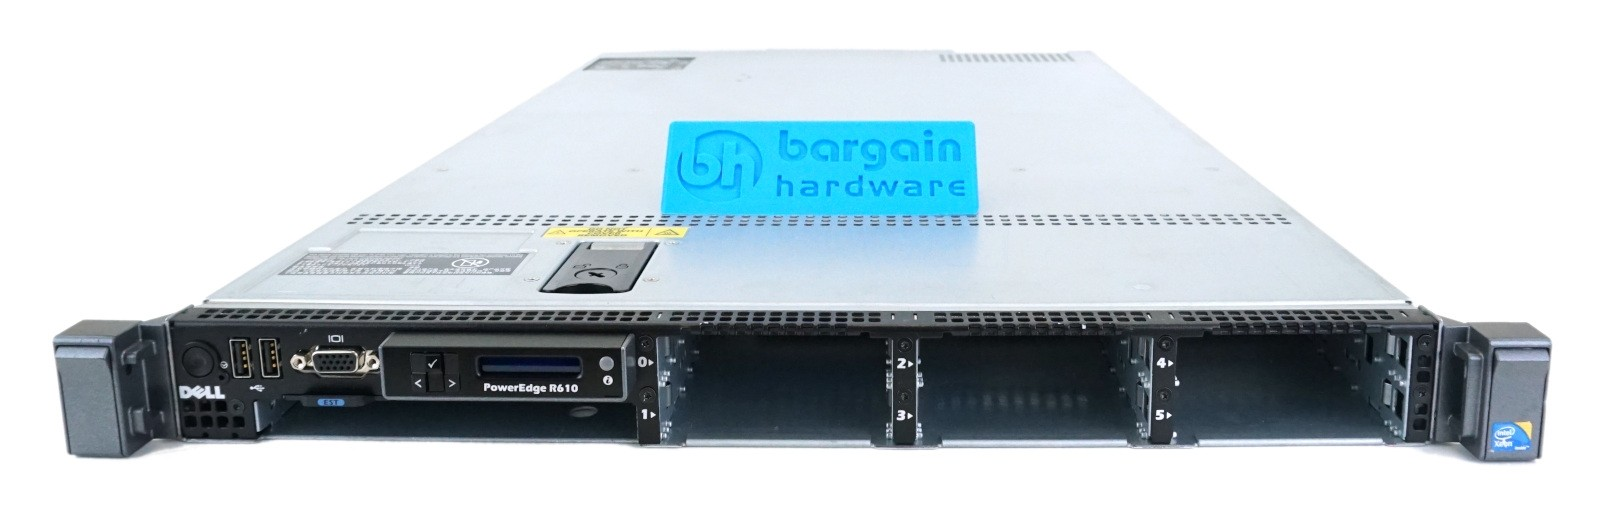 Dell PowerEdge R610 II 1U 6x 2 5